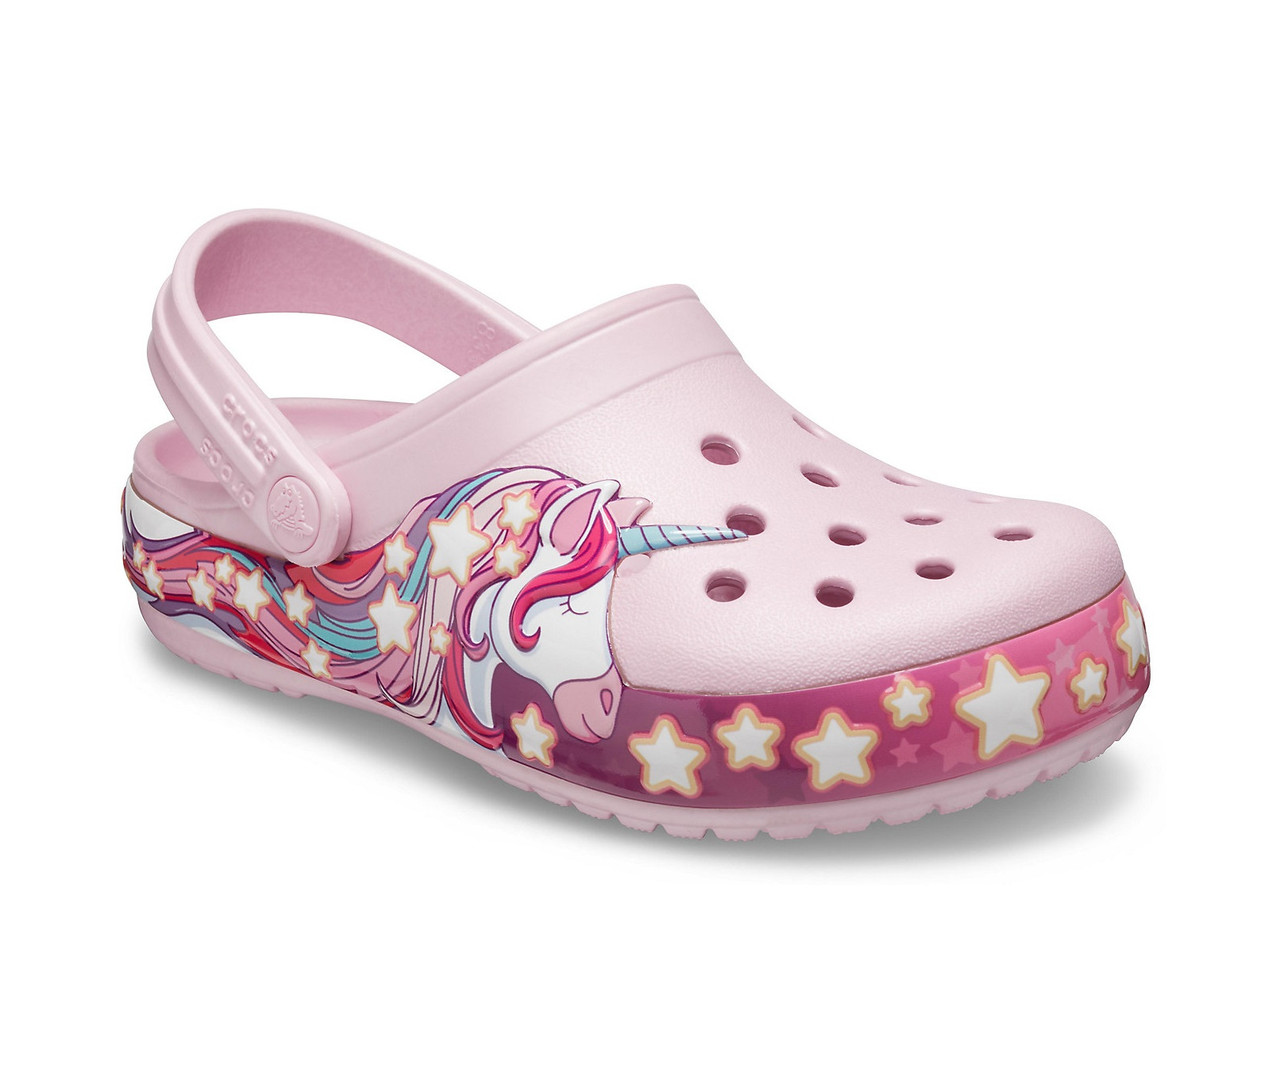 CROCS Kids' Fun Lab Unicorn Band Clog Lavender Детские Кроксы Сабо